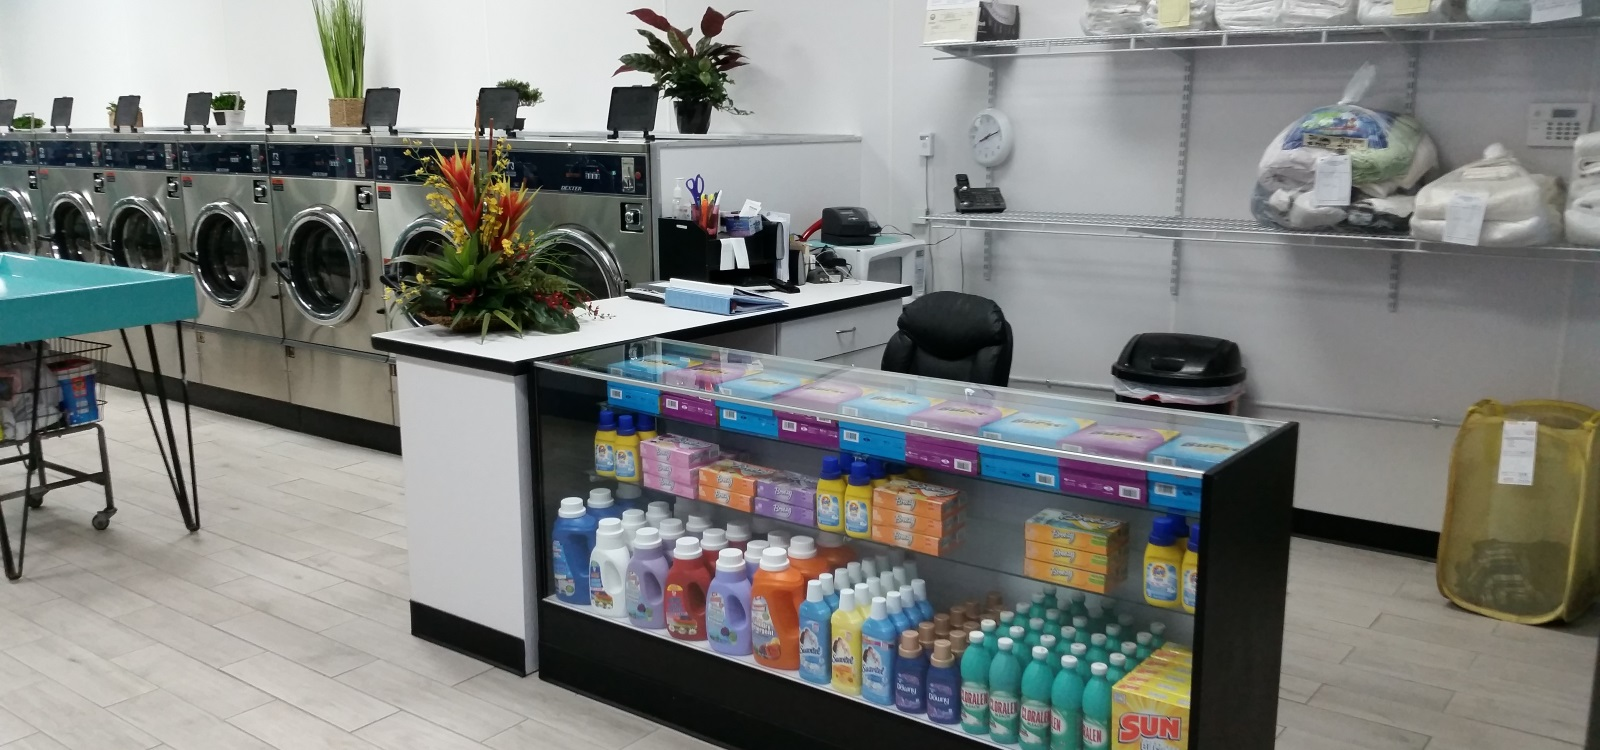 The Laundry Room - West Palm Beach Information